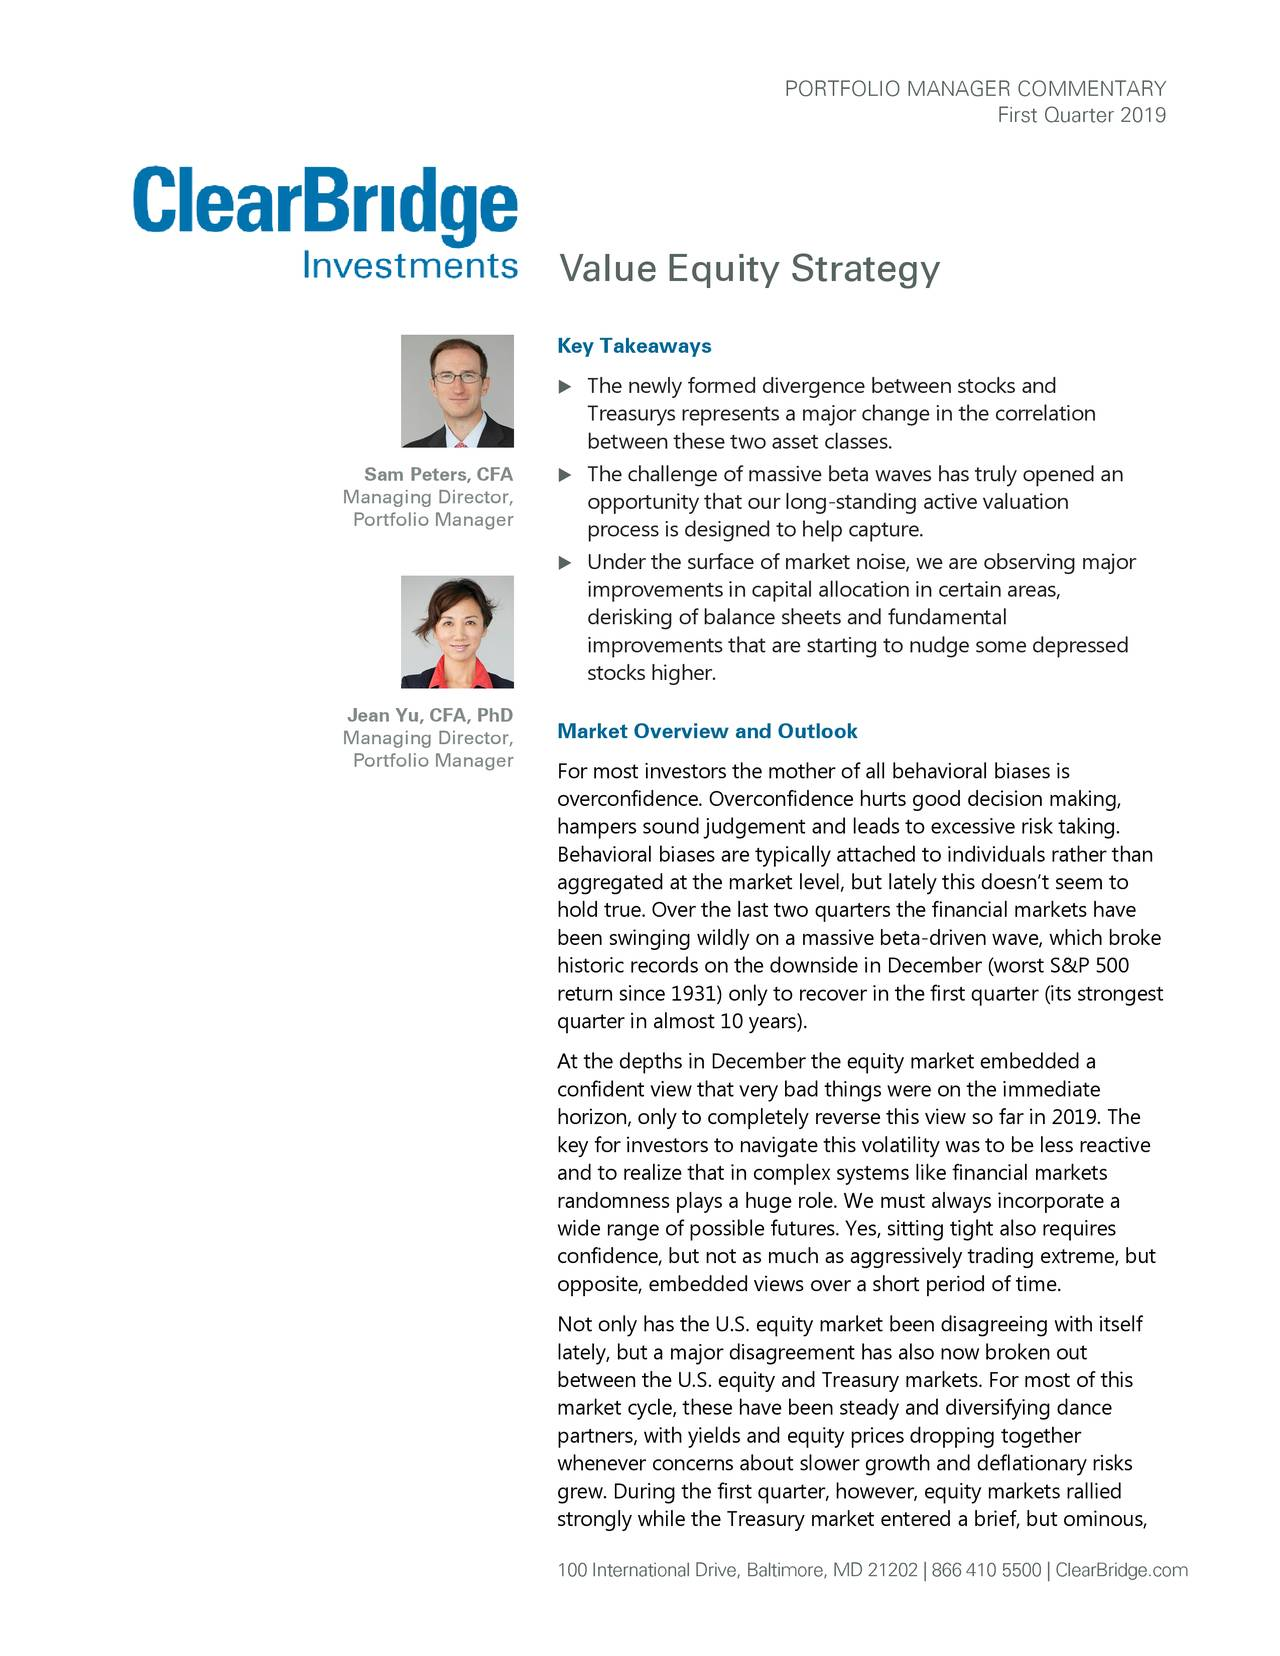 First Quarter 2019 Value Equity Strategy Key Takeaways  The newly formed divergence between stocks and Treasurys represents a major change in the correlation between these two asset classes . Sam Peters, CFA  The challenge of massive beta waves has truly opened an Managing Director, opportunity that our long- standing active valuation Portfolio Manager process is designed to help capture.  Under the surface of market noise, we are observing major improvements in capital allocation in certain areas, derisking of balance sheets and fundamental improvements that are starting to nudge some depressed stocks higher. Jean Yu, CFA, PhD Market Overview and Outlook Managing Director, Portfolio Manager For most investors the mother of all behavioral biases is overconfidence. Overconfidence hurts good decision making, hampers sound judgement and leads to excessive risk taking. Behavioral biases are typically attached to individuals rather than aggregated at the market level, but lately this doesn't seem to hold true. Over the last two quarters the financial markets have been swinging wildly on a massive beta-driven wave, which broke historic records on the downside in December (worst S&P 500 return since 1931) only to recover in the first quarter (its strongest quarter in almost 10 years). At the depths in December the equity market embedded a confident view that very bad things were on the immediate horizon, only to completely reverse this view so far in 2019. The key for investors to navigate this volatility was to be less reactive and to realize that in complex systems like financial markets randomness plays a huge role. We must always incorporate a wide range of possible futures. Yes, sitting tight also requires confidence, but not as much as aggressively trading extreme, but opposite, embedded views over a short period of time. Not only has the U.S. equity market been disagreeing with itself lately, but a major disagreement has also now broken out between the U.S. equity a